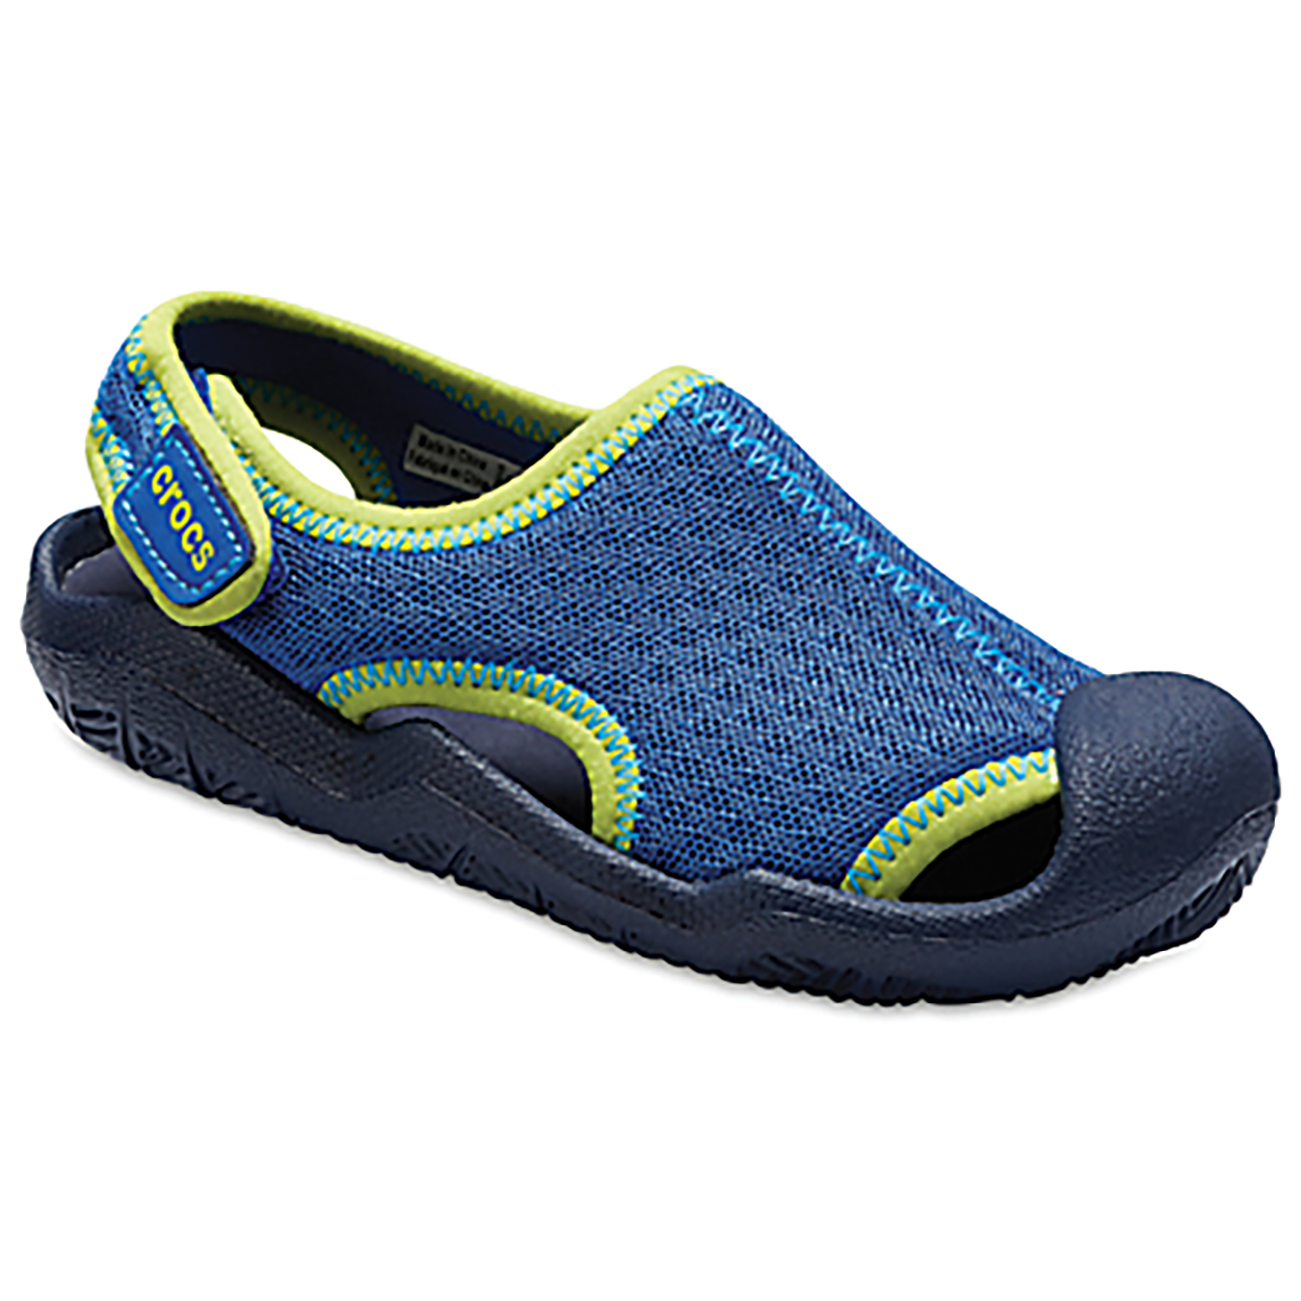 Unisex Kids Crocs Swiftwater Sandal